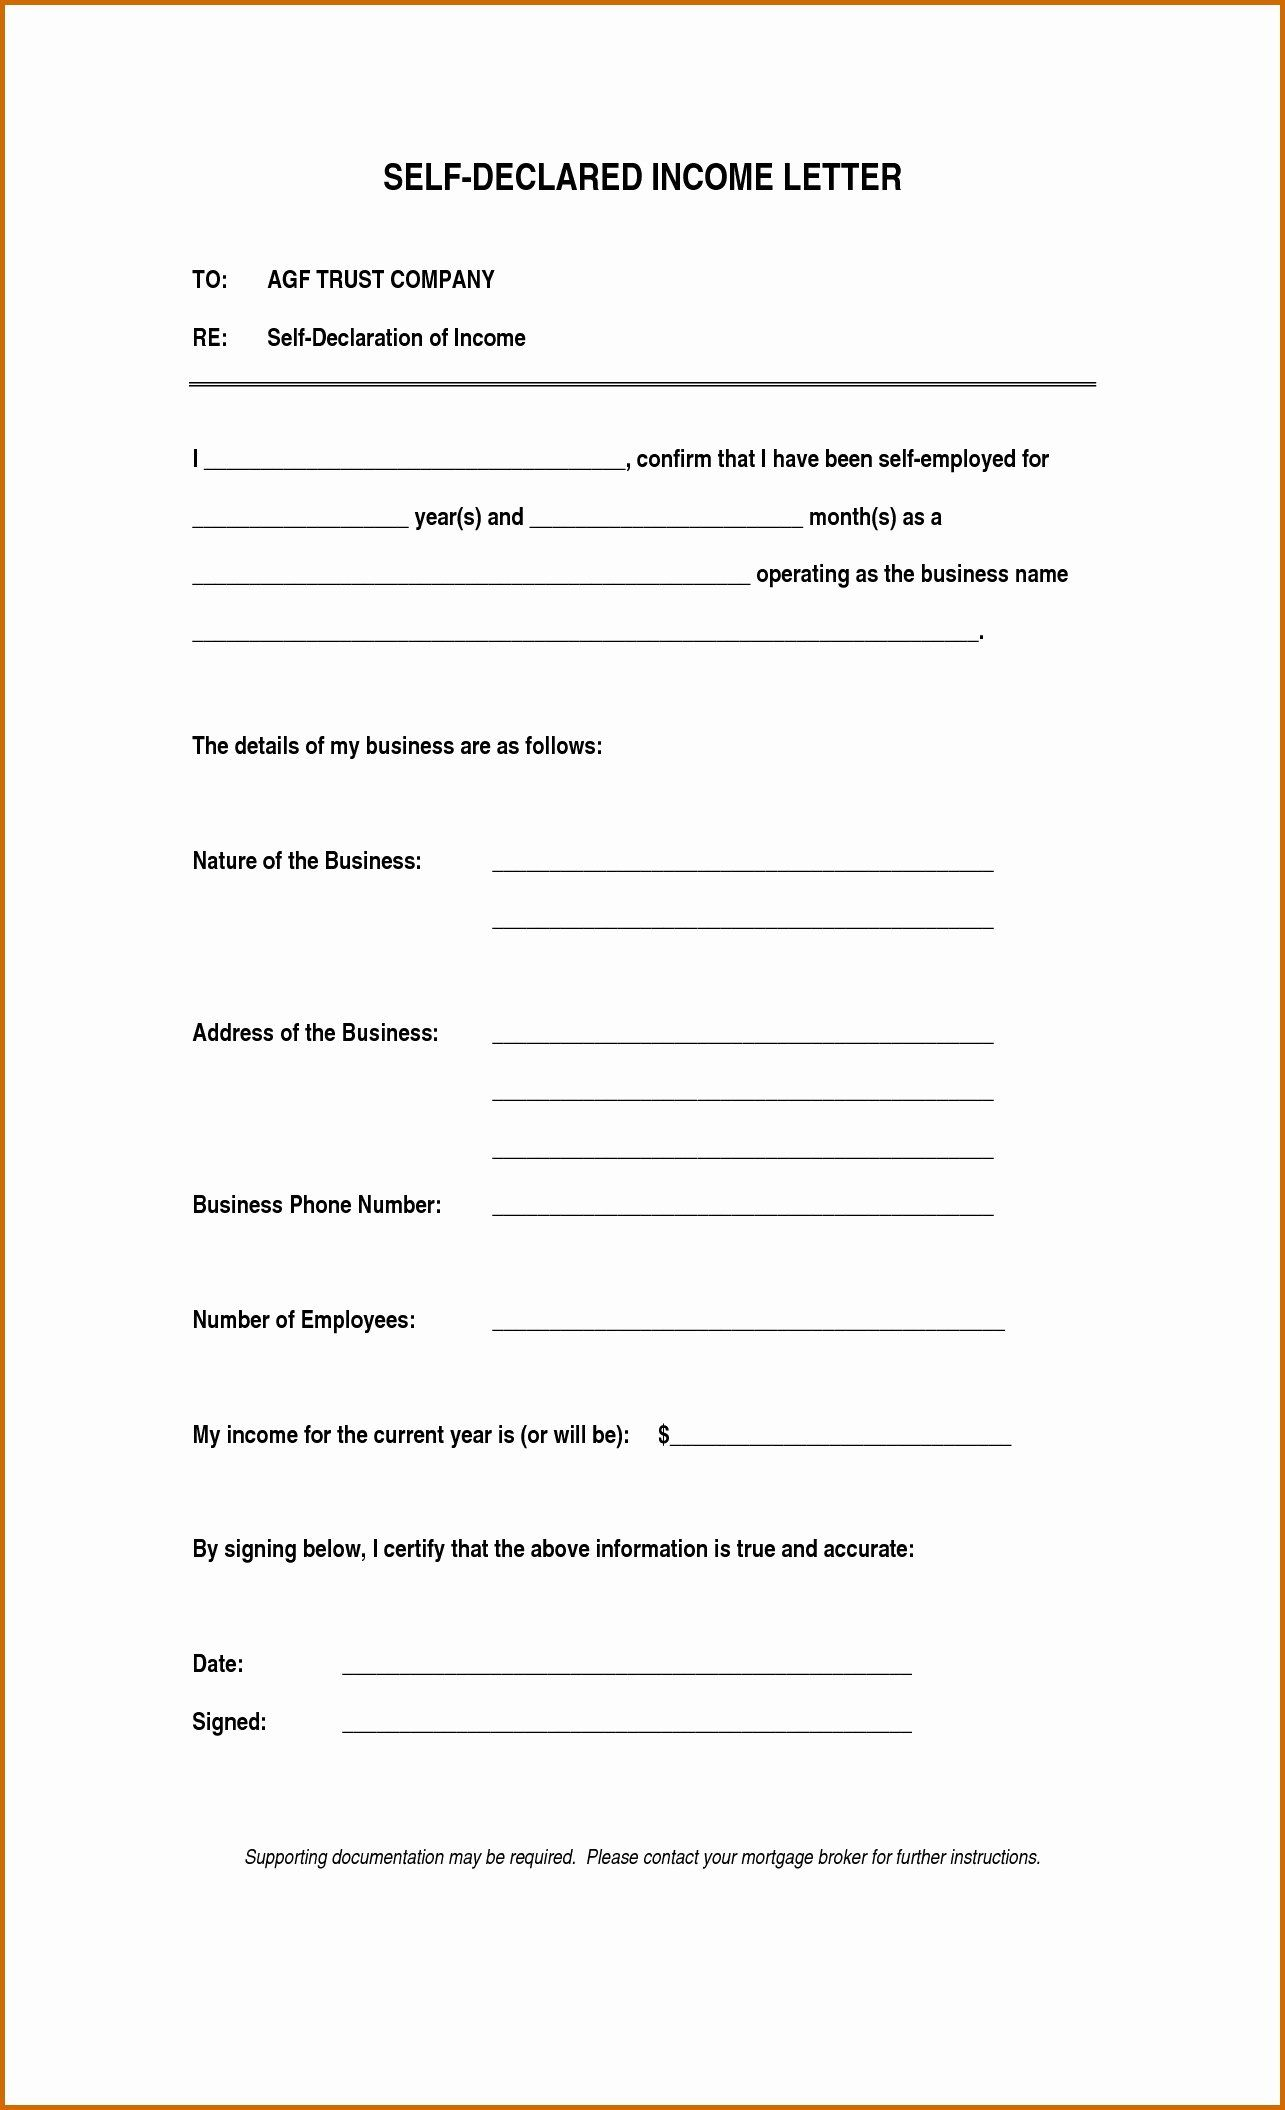 Self Employed Income Verification Letter Beautiful Notarized Letter For Self Employment Flowersheet Lettering Job Letter Professional Cover Letter Template